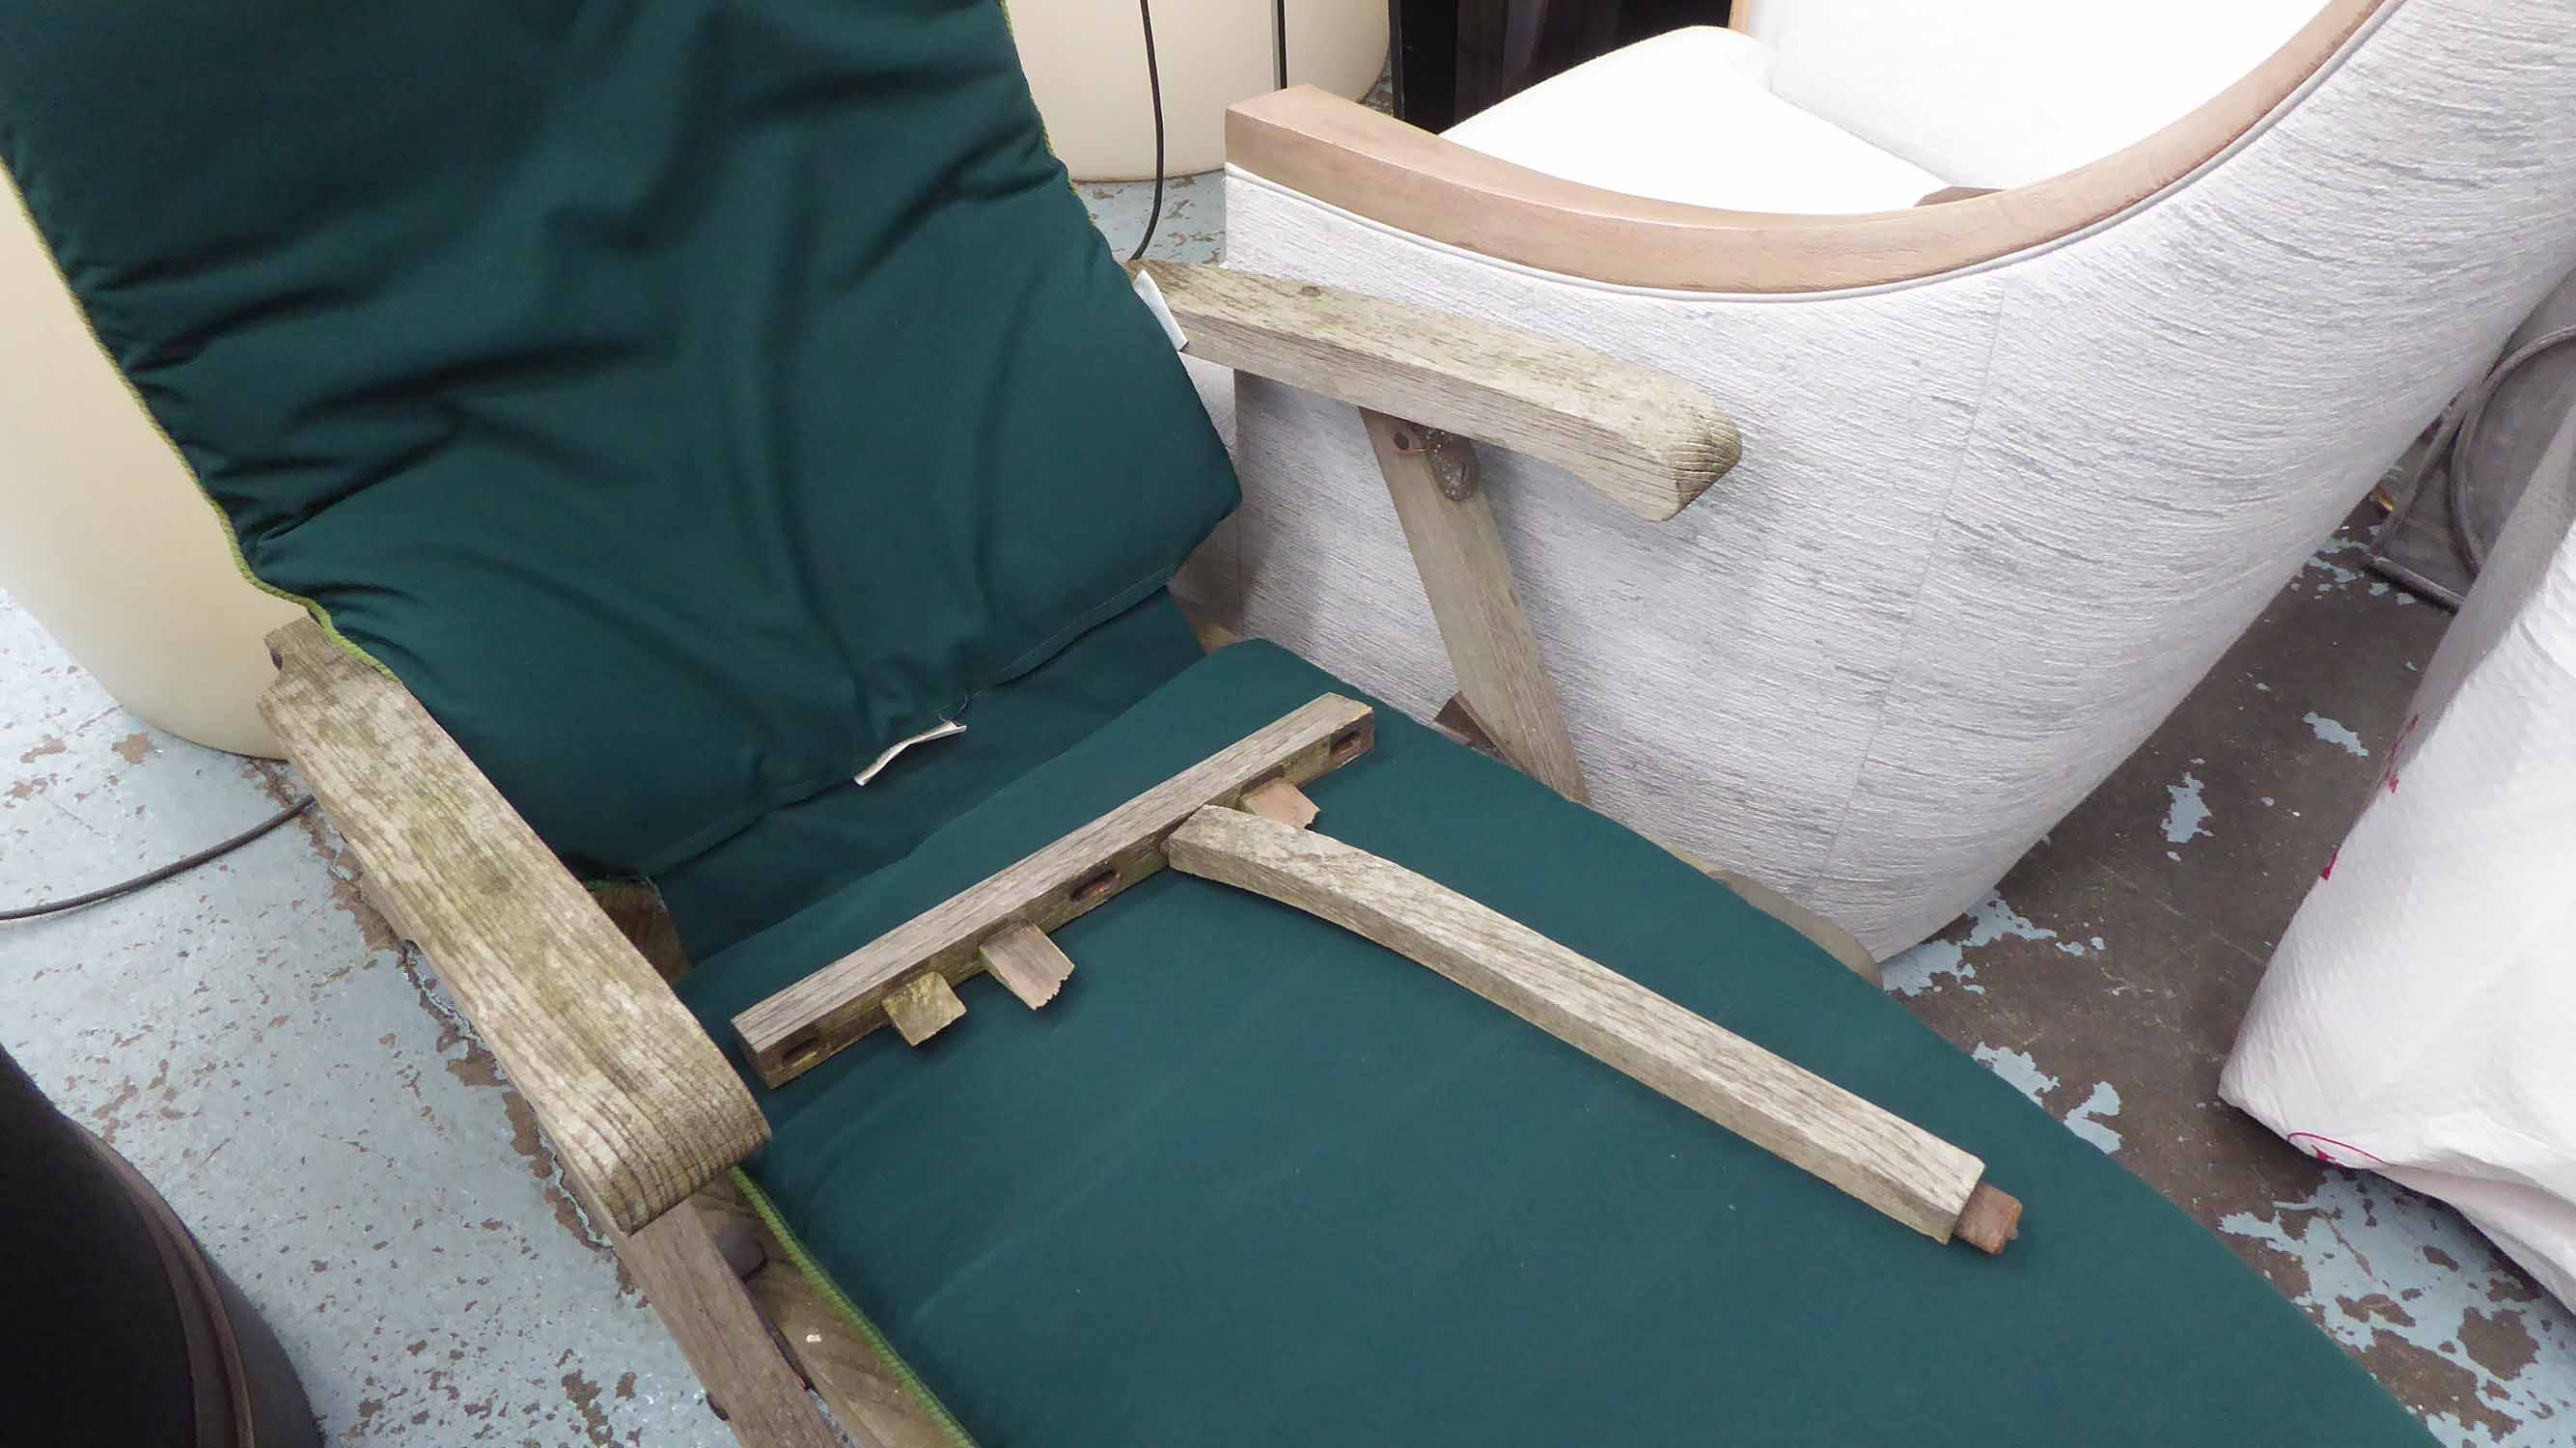 Lot 26 - TEAK GARDEN RECLINERS, a pair, weathered, by Barlow Tyrie.